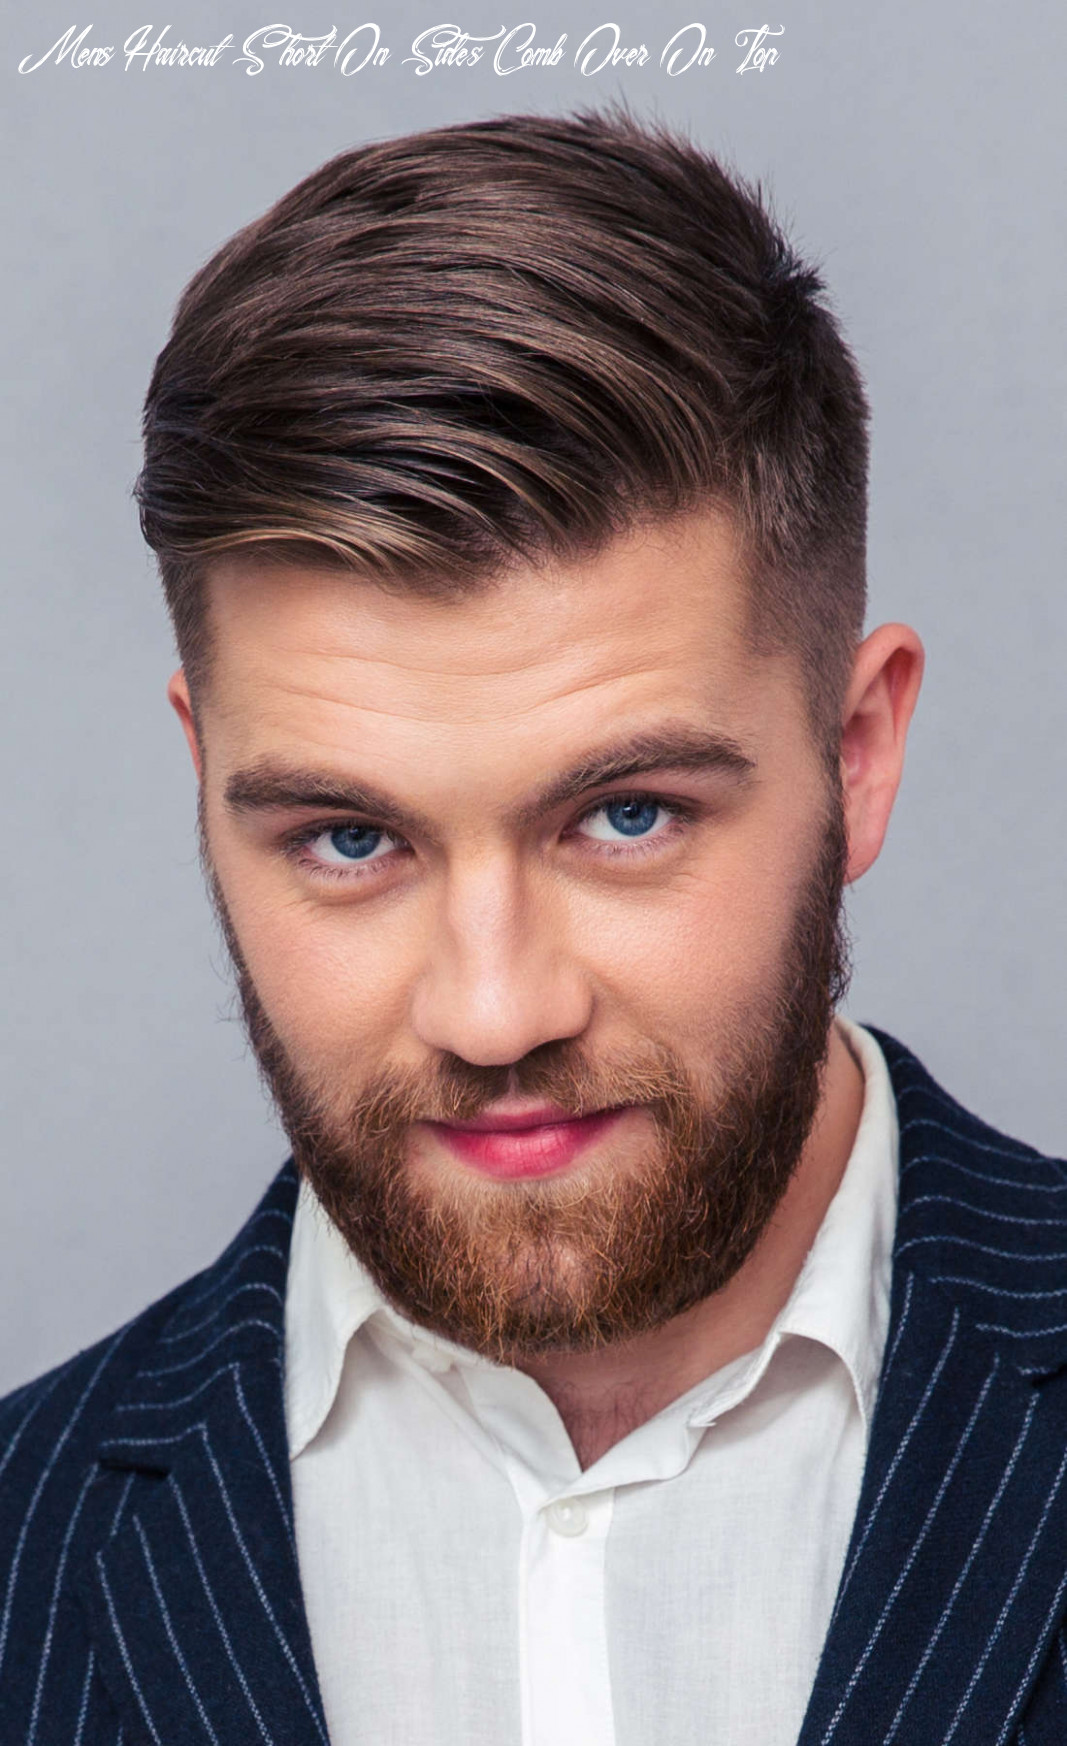 10 comb over haircuts: (not what you think!) mens haircut short on sides comb over on top